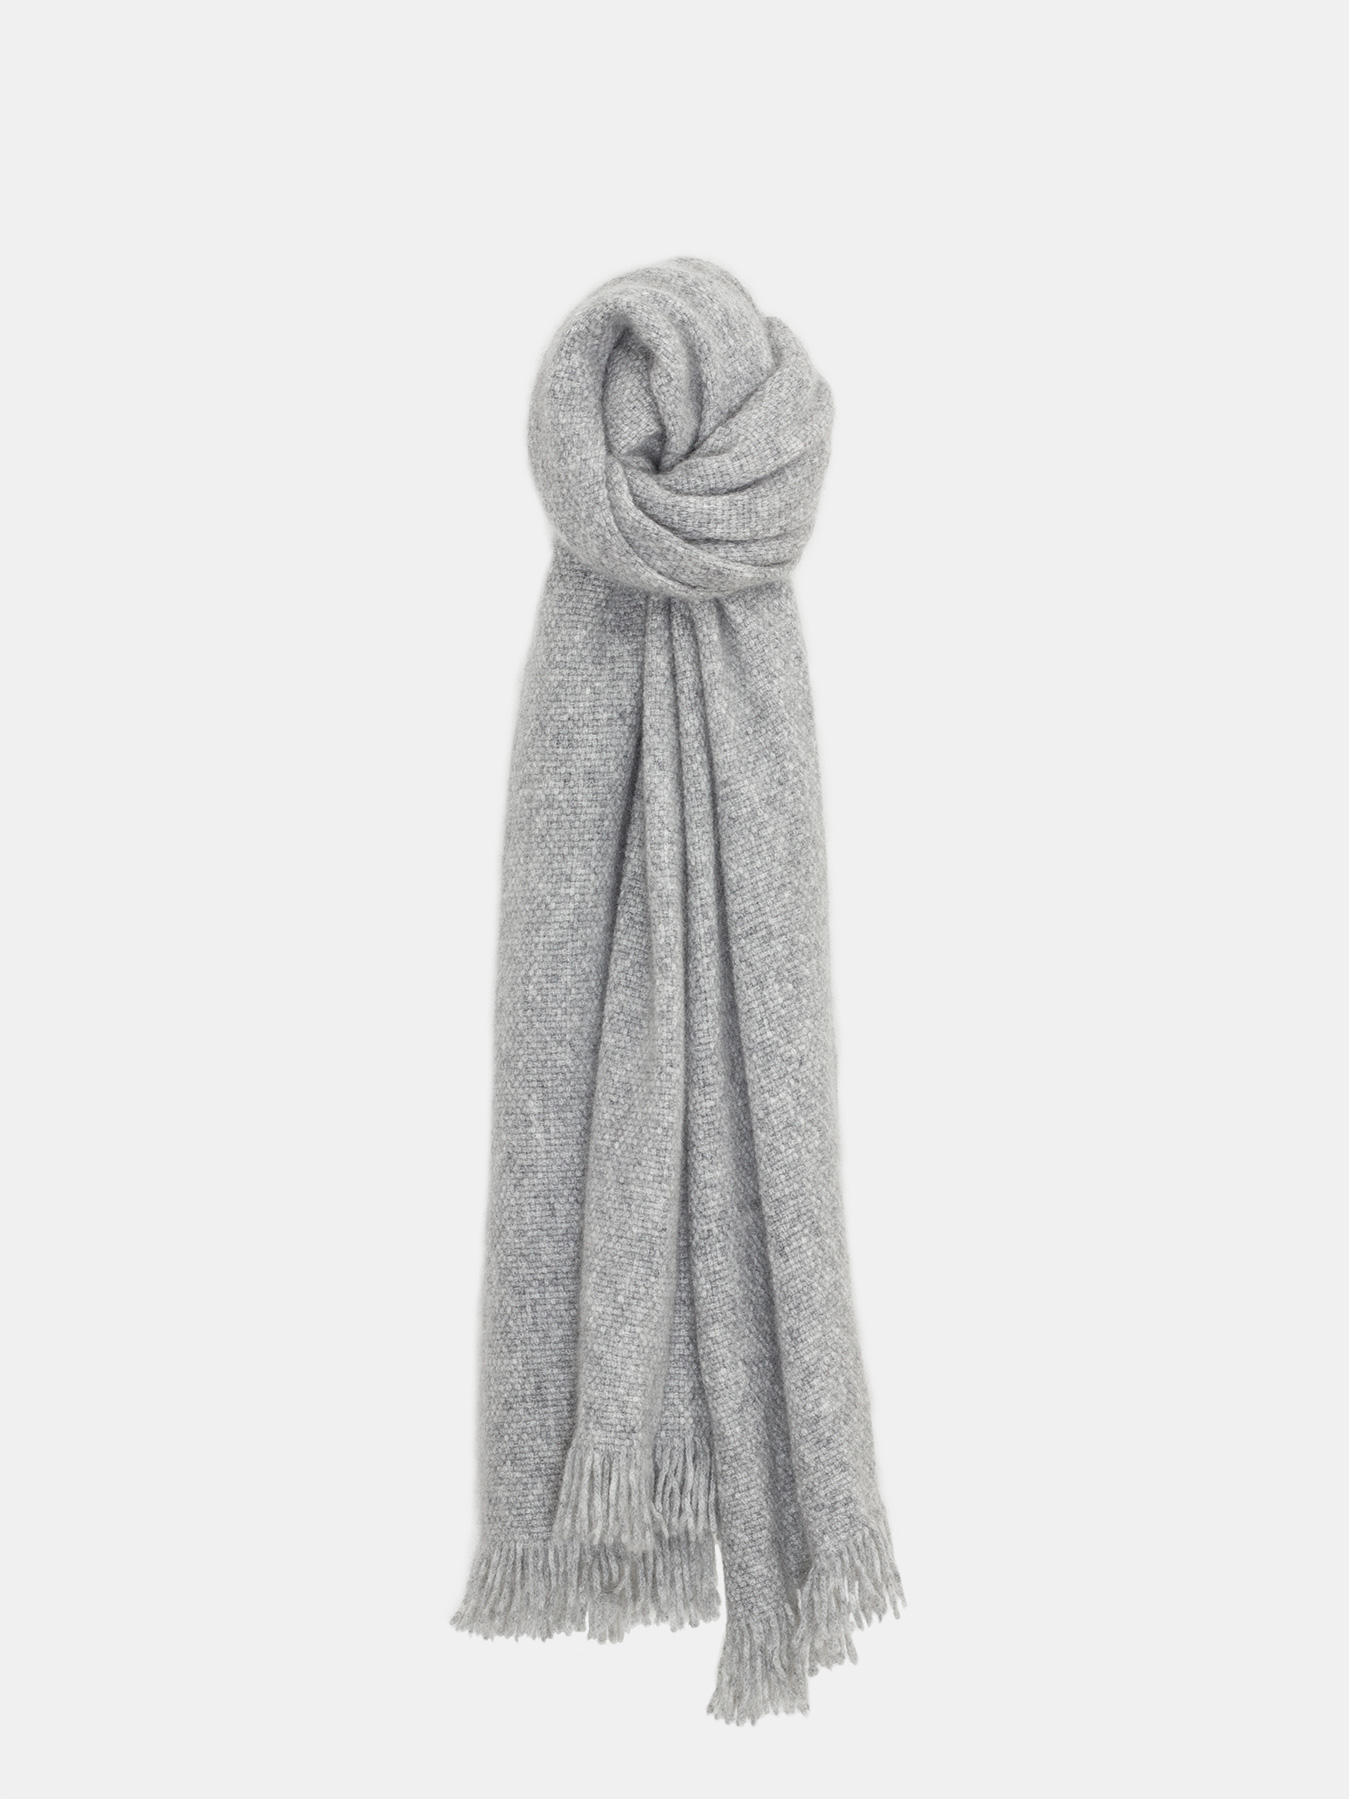 Classic Knitted Cashmere Scarf Grey | Nihao Planet